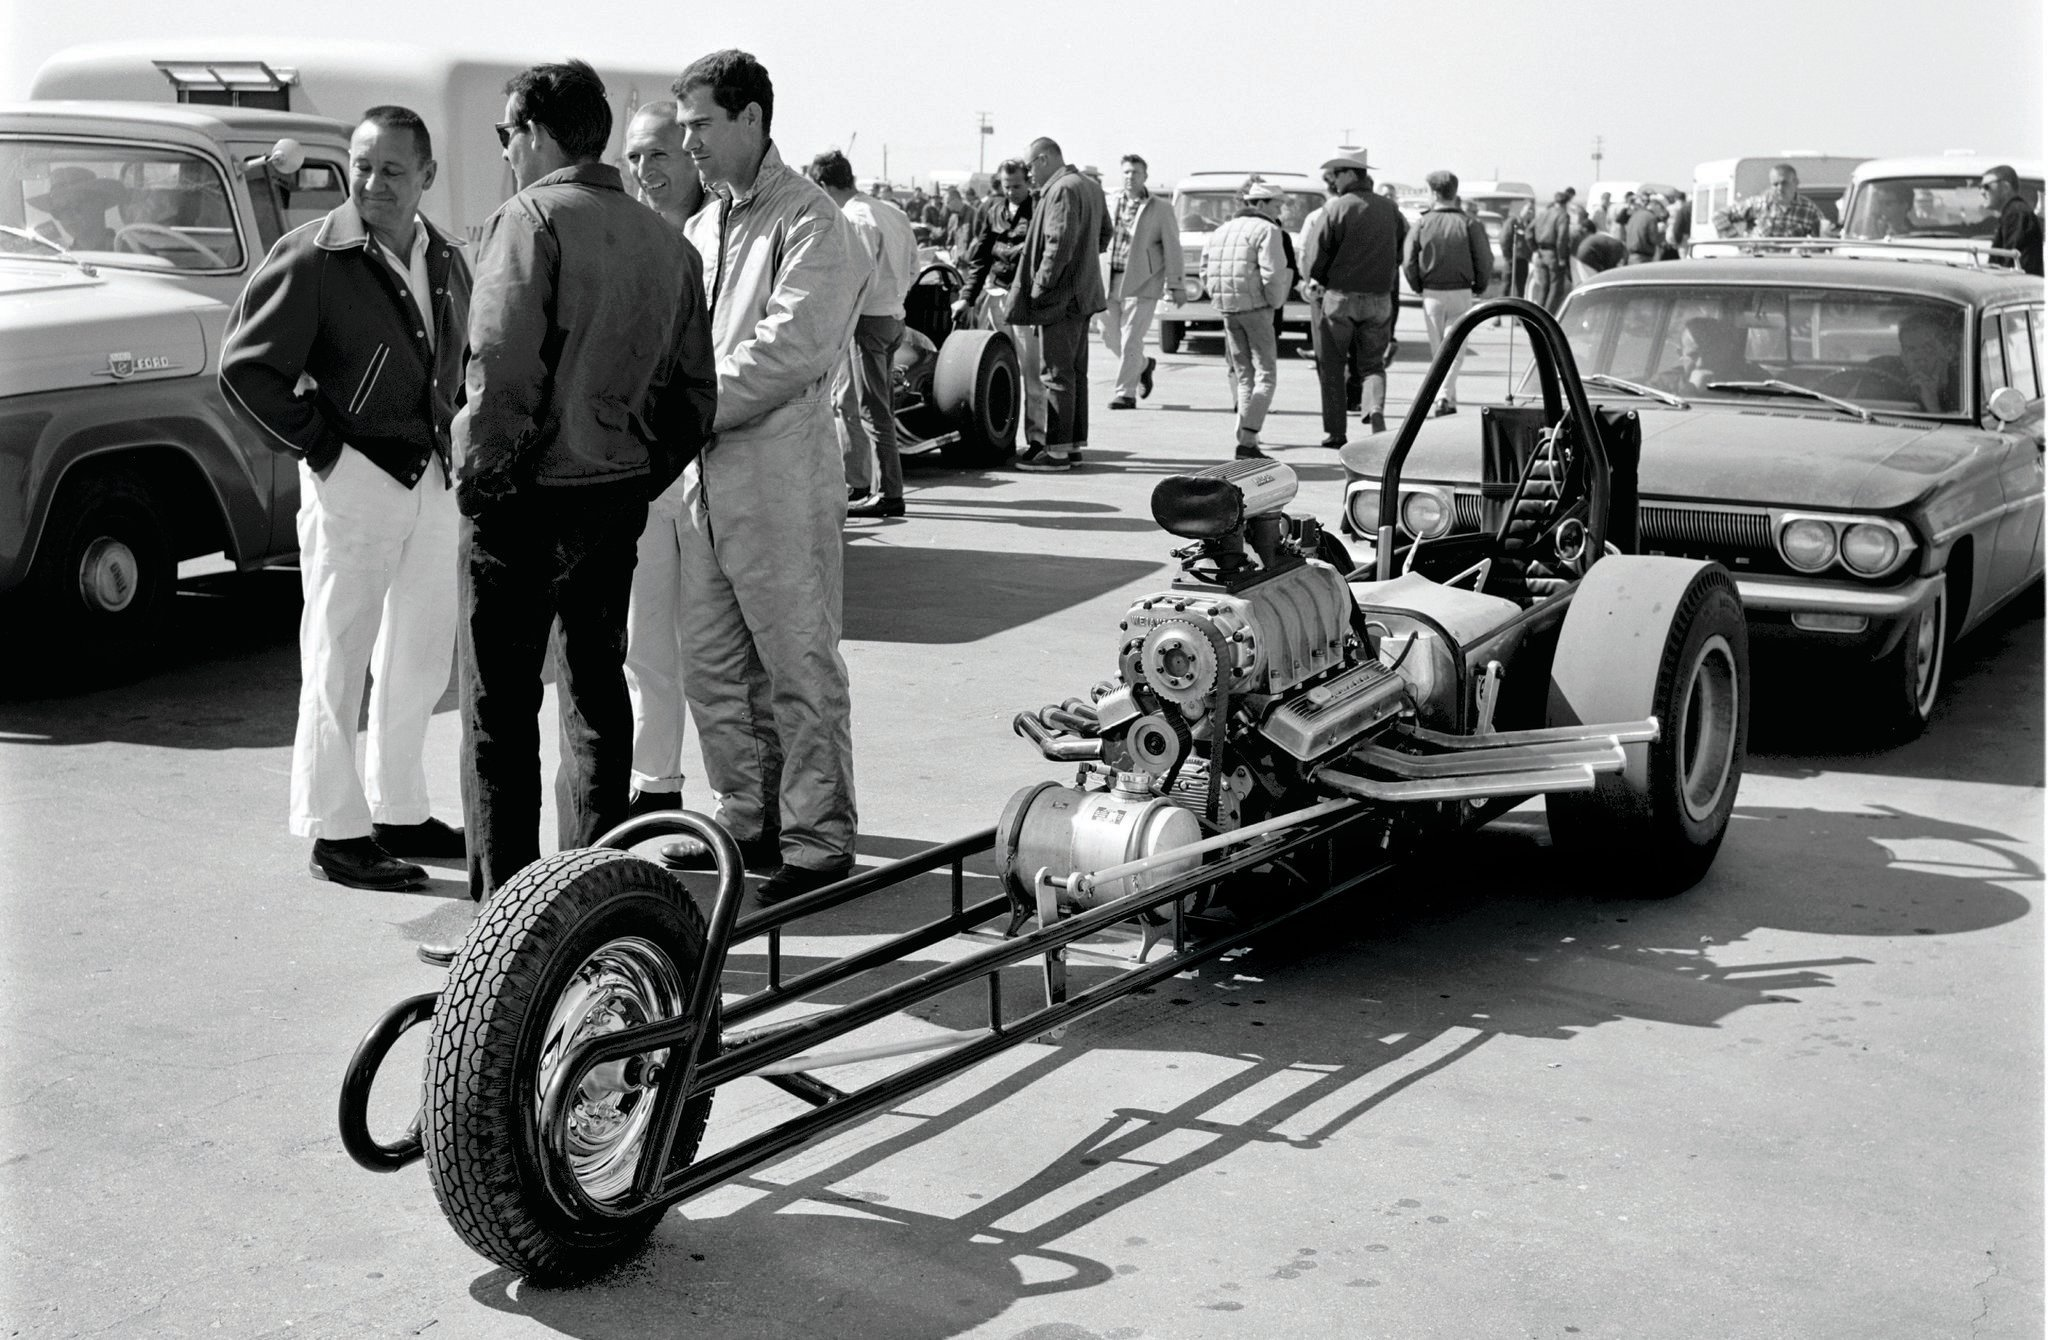 Tin-bender Kenny Ellis's unique slingshot is illustrative of this period's minimal mechanical restrictions and the unbridled innovation that resulted. Kenny built and successfully campaigned at least three different three-wheelers over a decade. He's shown (in firesuit) at the '63 March Meet. The guy in the white pants sure looks like Jim Tice, who grew his AHRA by running popular classes that rival Wally Parks would not.